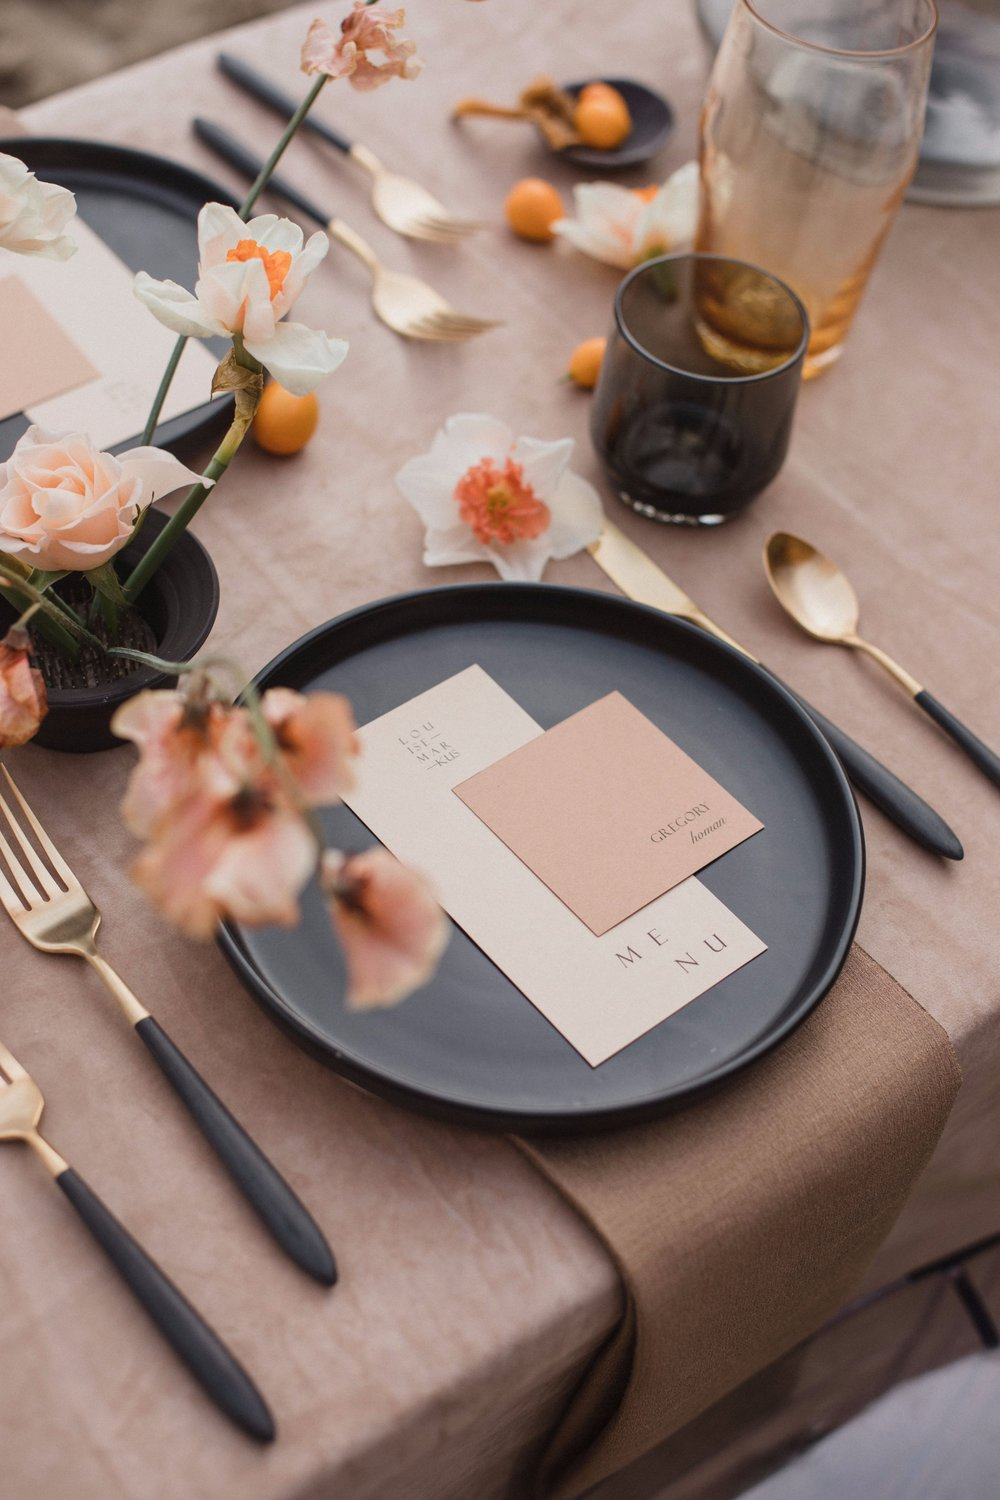 ELEMENTAL - $75/hrIdeal for editorial photoshoots, dinner parties and other intimate gatheringsA La Carte Items per Client's Needs:Planning MeetingDesign BoardVendor ReferralsMaterials SourcingOnsite Styling